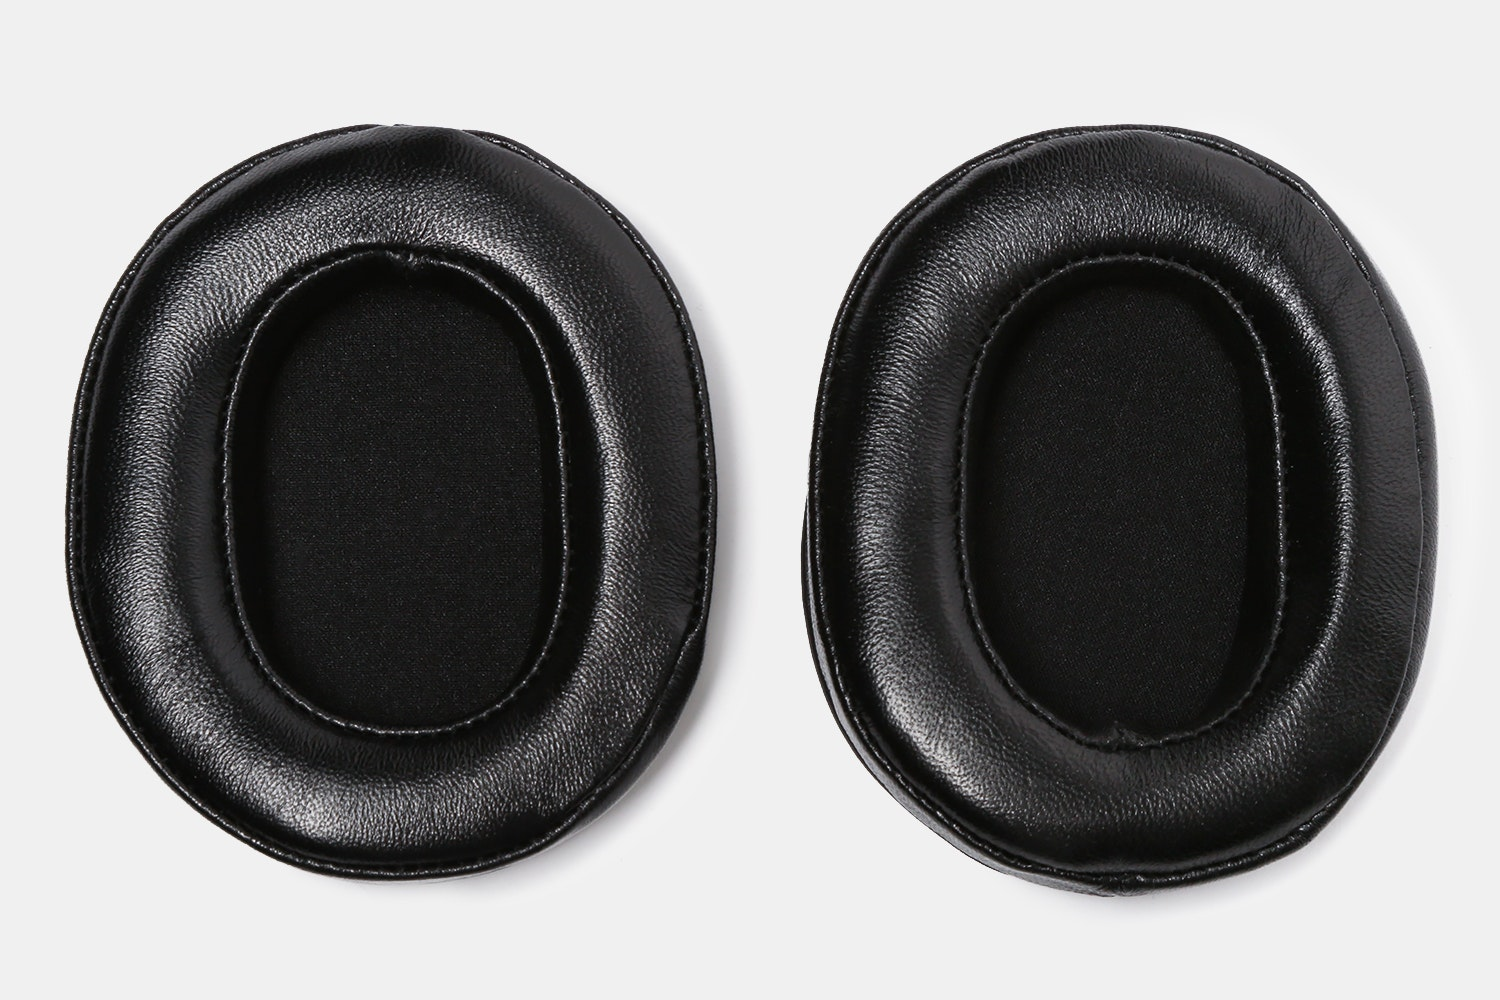 Beyerdynamic DT: Sheepskin (+ $13)